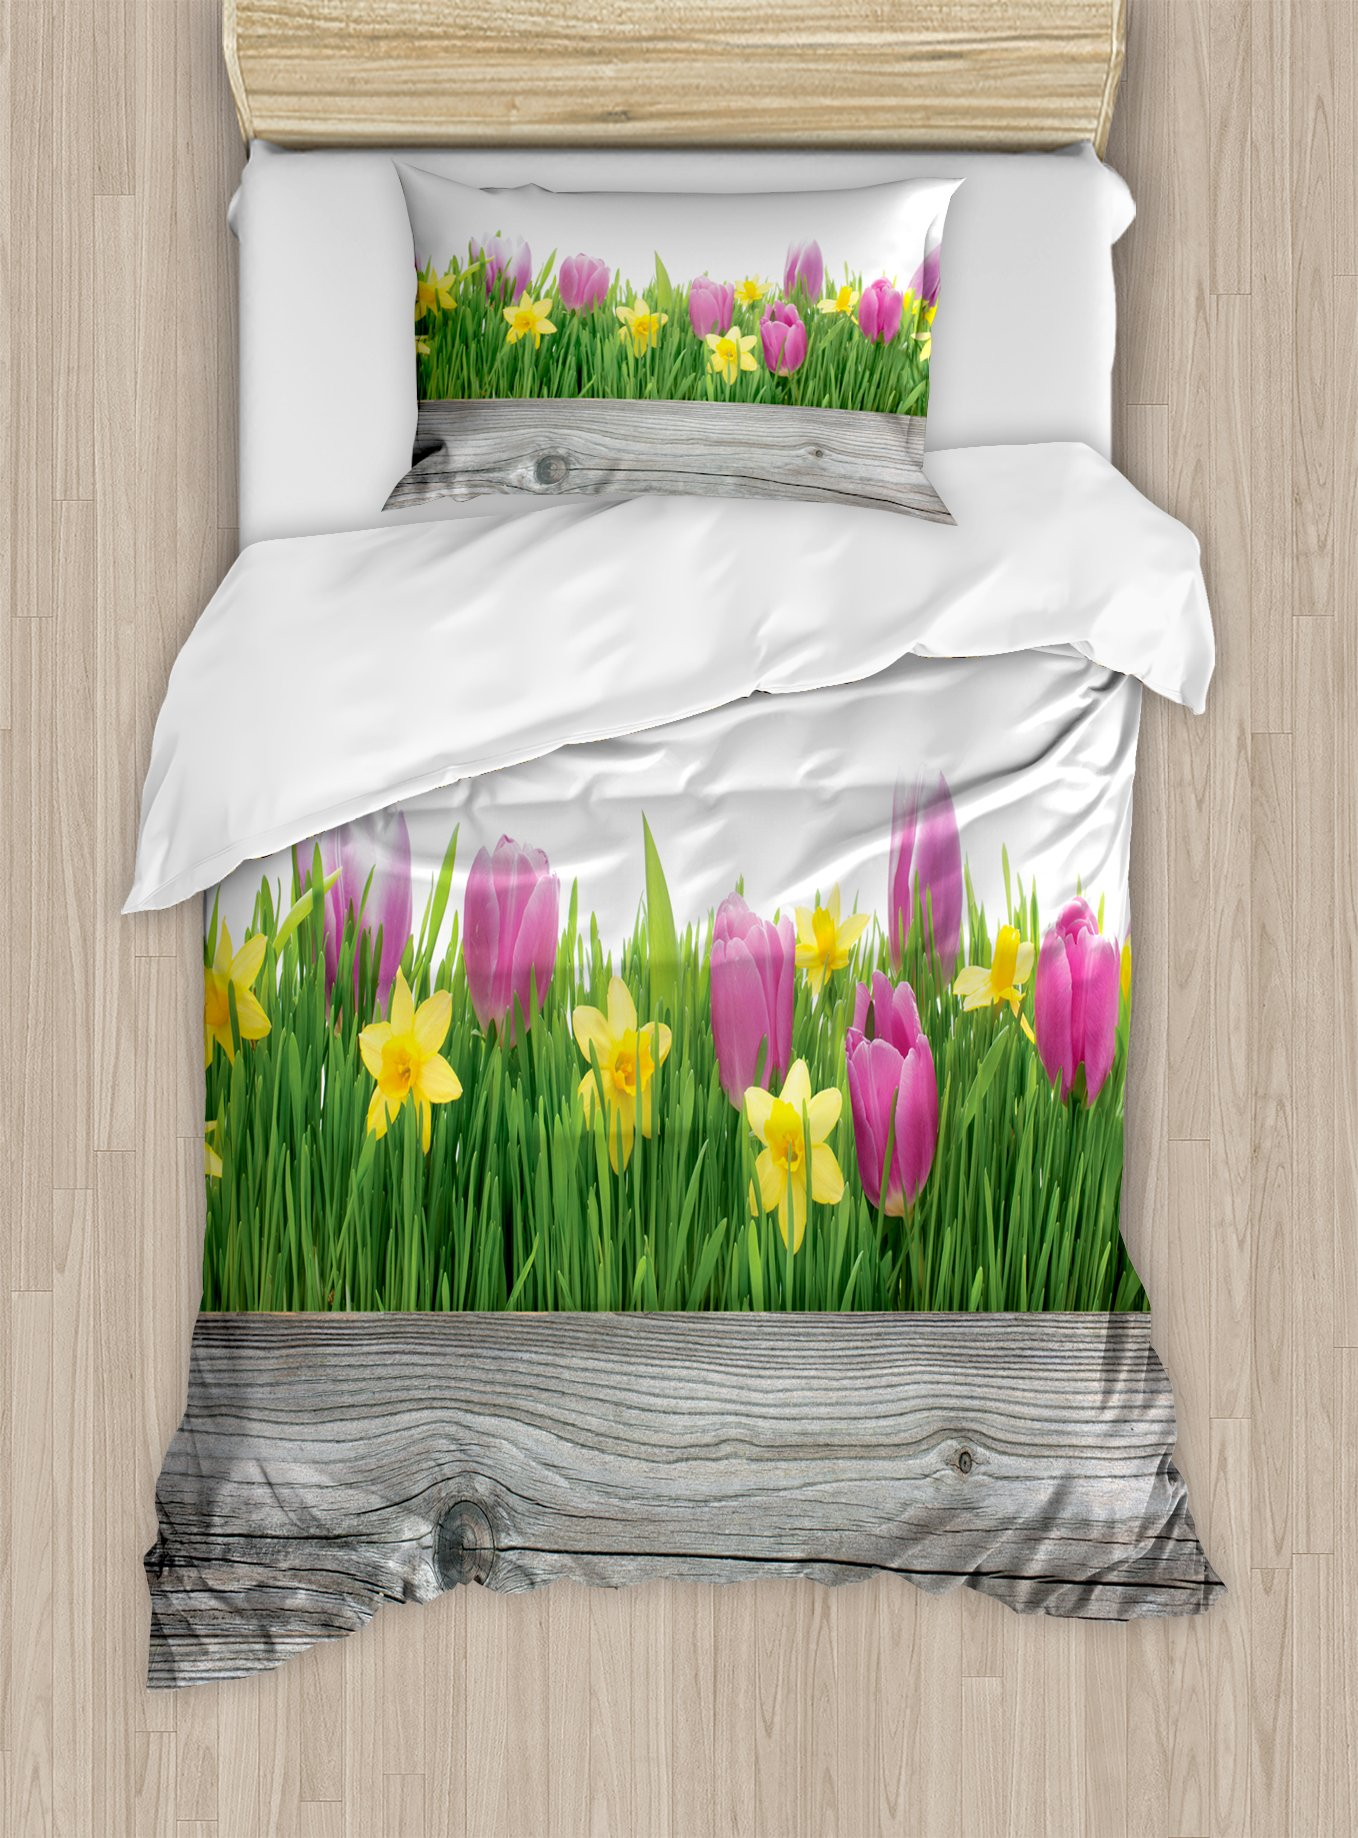 Daffodil Decor Duvet Cover Set by Ambesonne, Spring Tulips and Daffodils Flowers Blossoms in Vibrant Colors with Wood Plank, 2 Piece Bedding Set with Pillow Sham, Twin / Twin XL, Purple Yellow Green